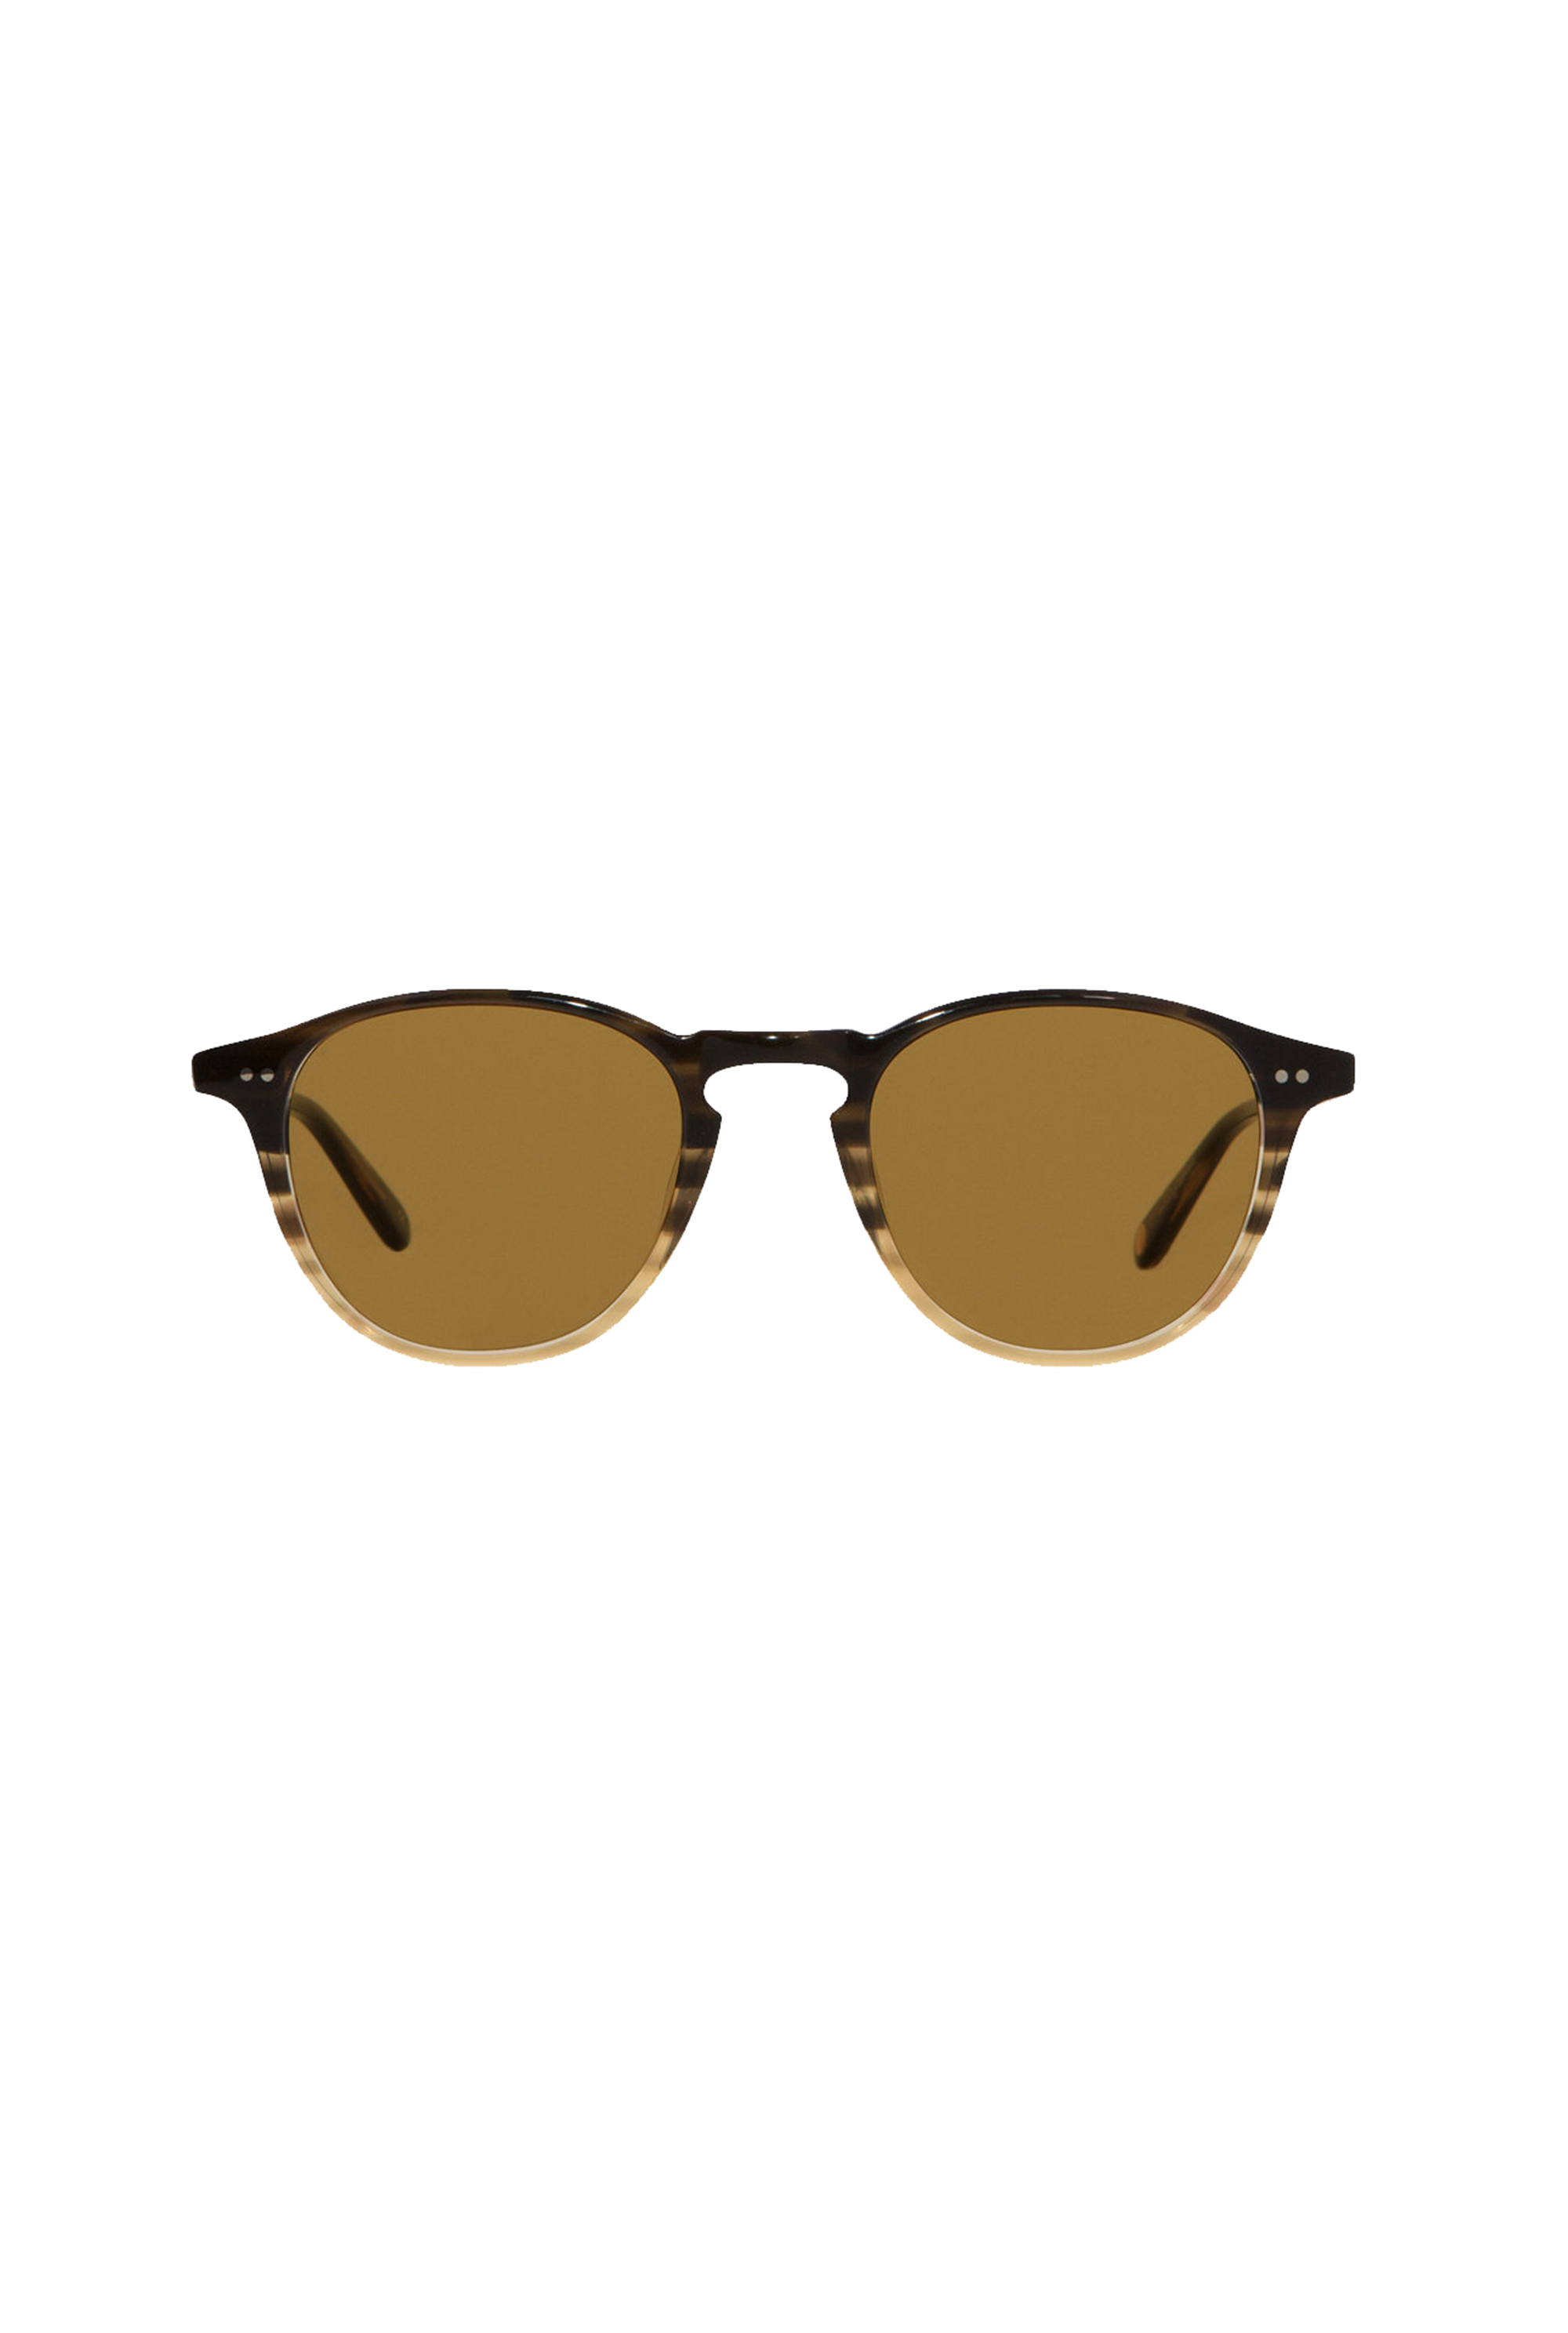 Garrett Leight Hampton - Sandalwood Drift Semi Flat Pure Coffee